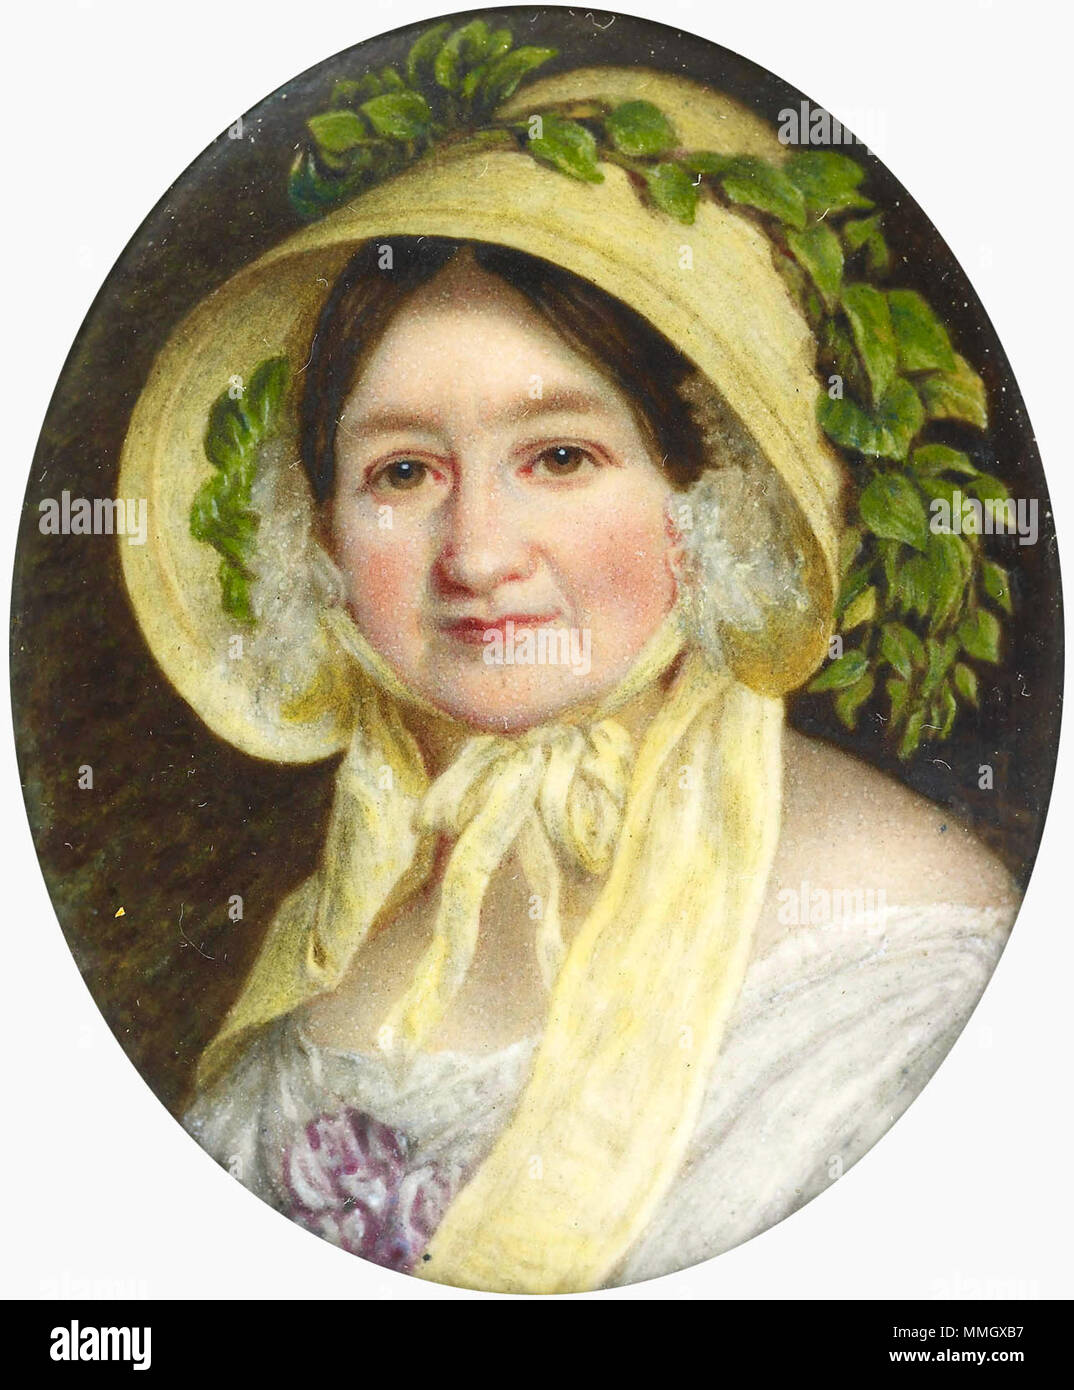 . Joseph Lee'e enamel copy derives from Franz Xaver Winterhalter's three-quarter-length oil portrait of the Duchess dating from 1848 (404524; Royal Collection). She is shown wearing a white day dress and a large straw bonnet tied with a broad yellow ribbon. The original shows her standing in a landscape probably intended to represent Boissière near Geneva, where she lived a retired life following her divorce in 1820 from the Grand Duke Constantine of Russia. Her unhappy life had taken a toll on her appearance. By 1841, her niece, Princess Feodora reported to her half-sister, Queen Victoria: 'I - Stock Image